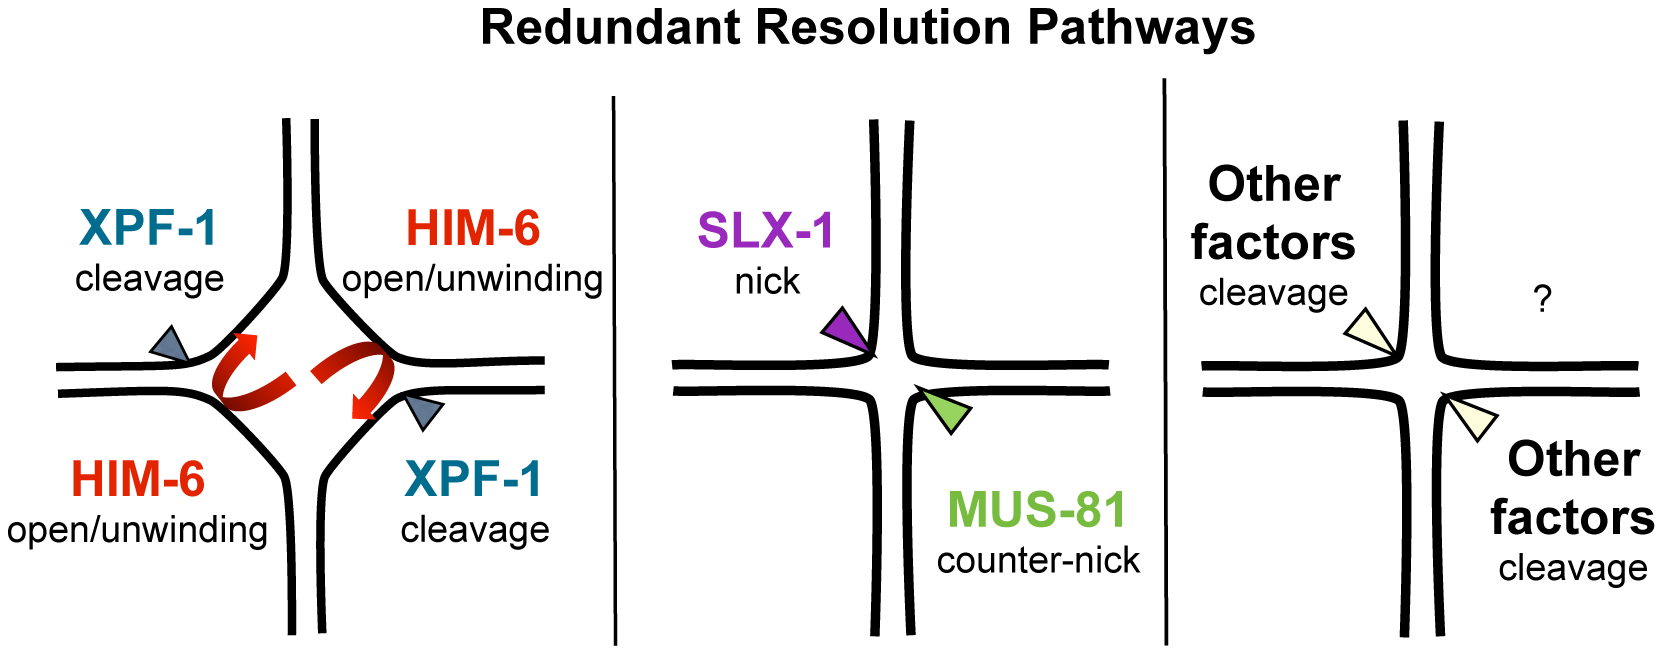 Model of redundant resolution pathways.